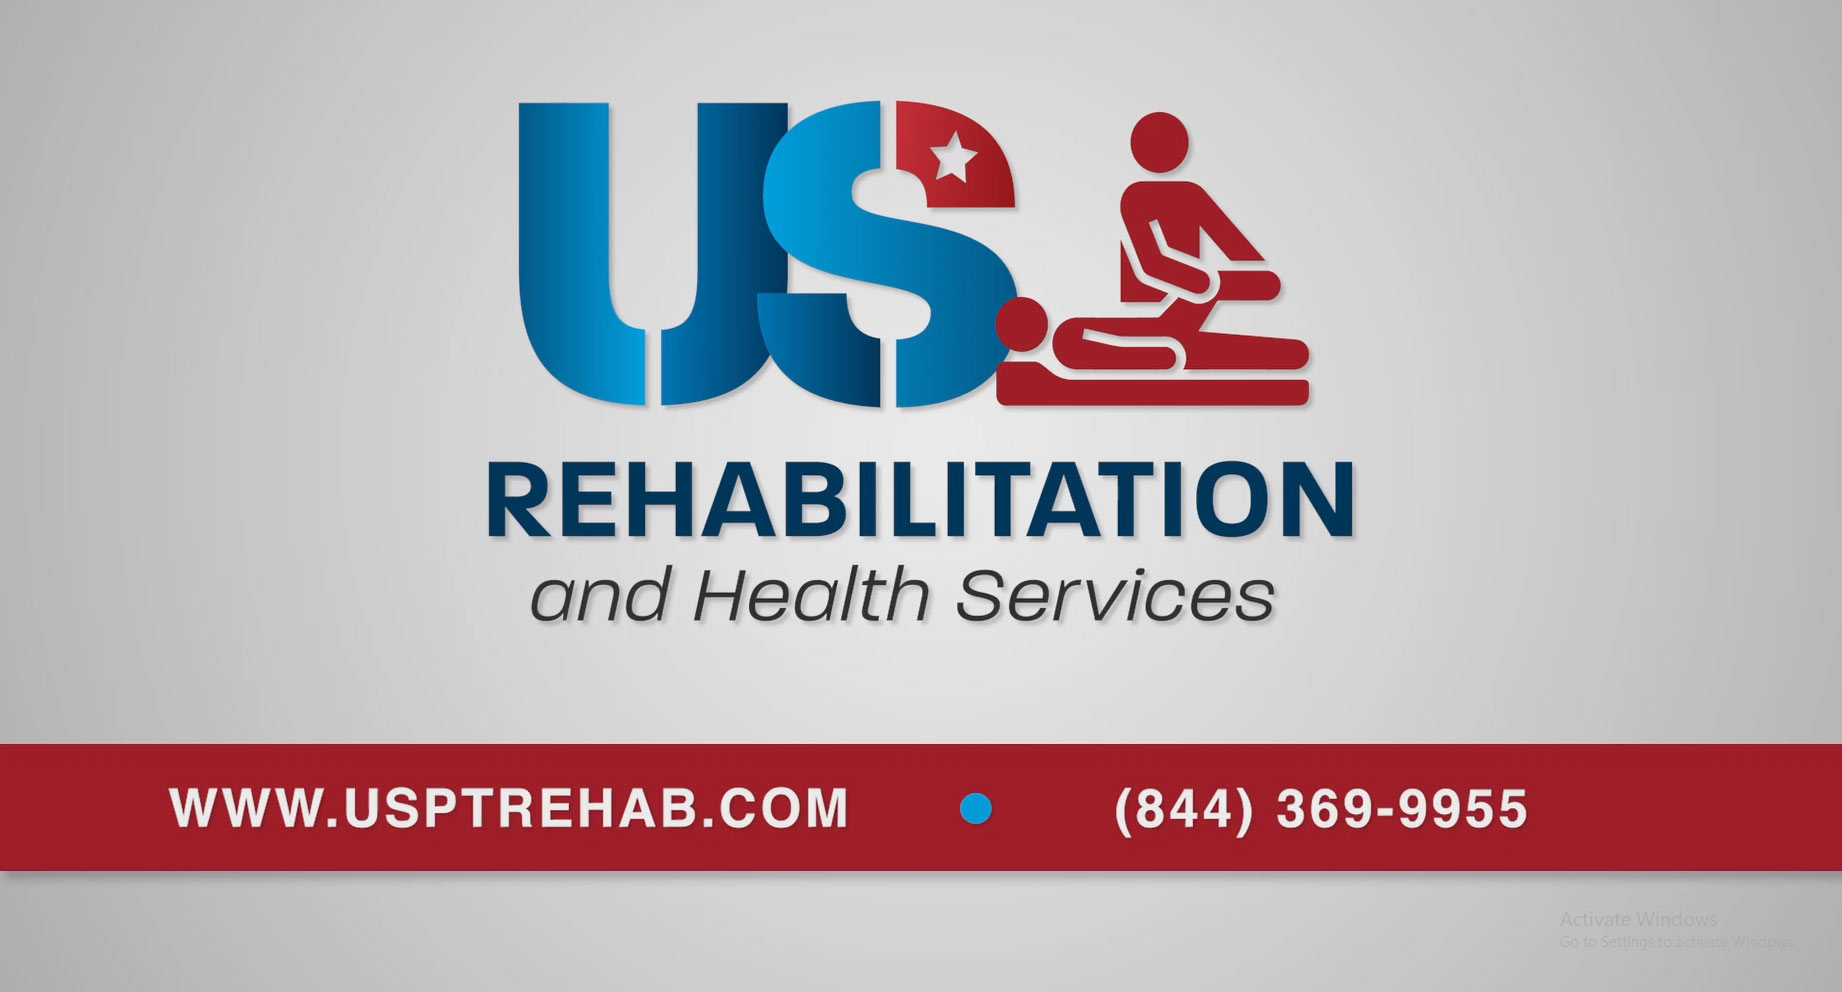 Welcome to US Rehabilitation and Health Services of Michigan